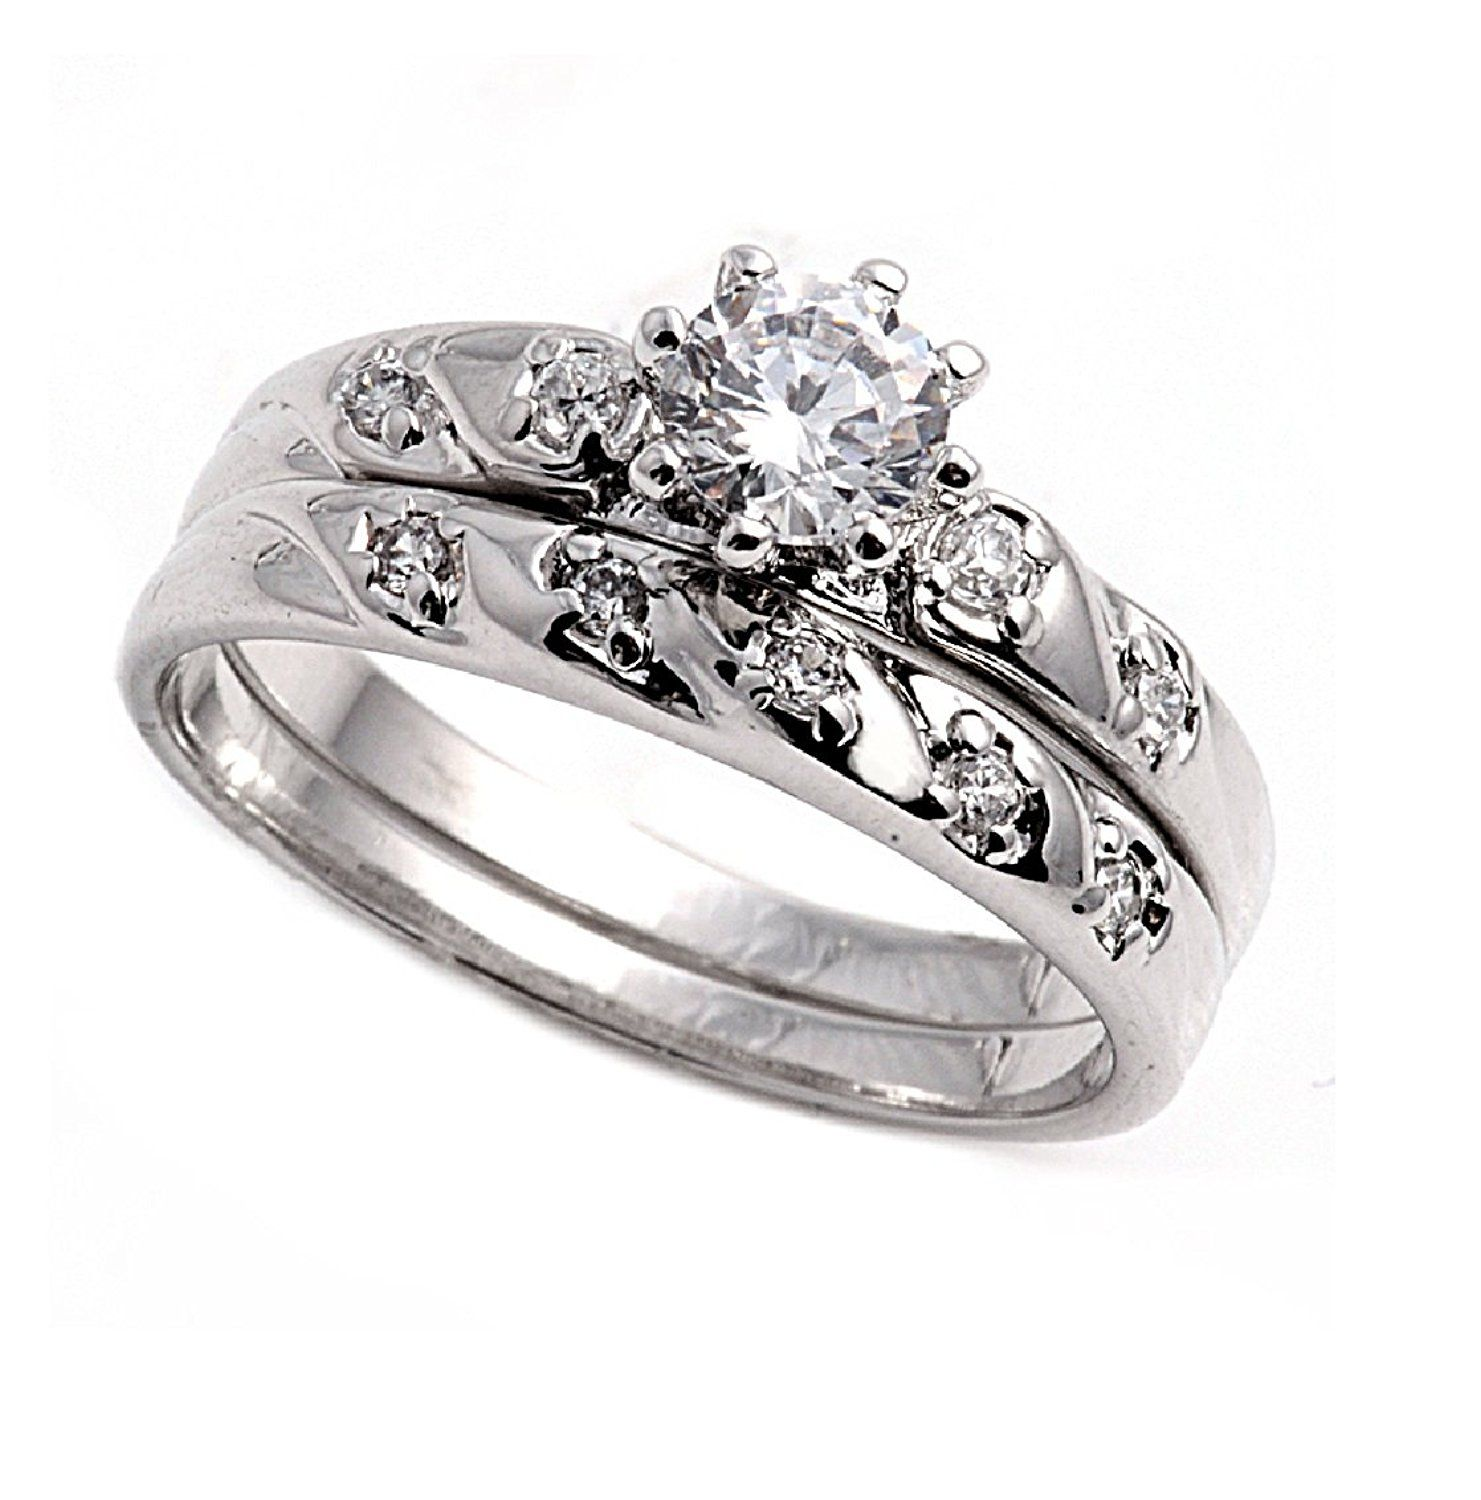 Set of 2 Round Center Cubic Zirconia Ring Sterling Silver